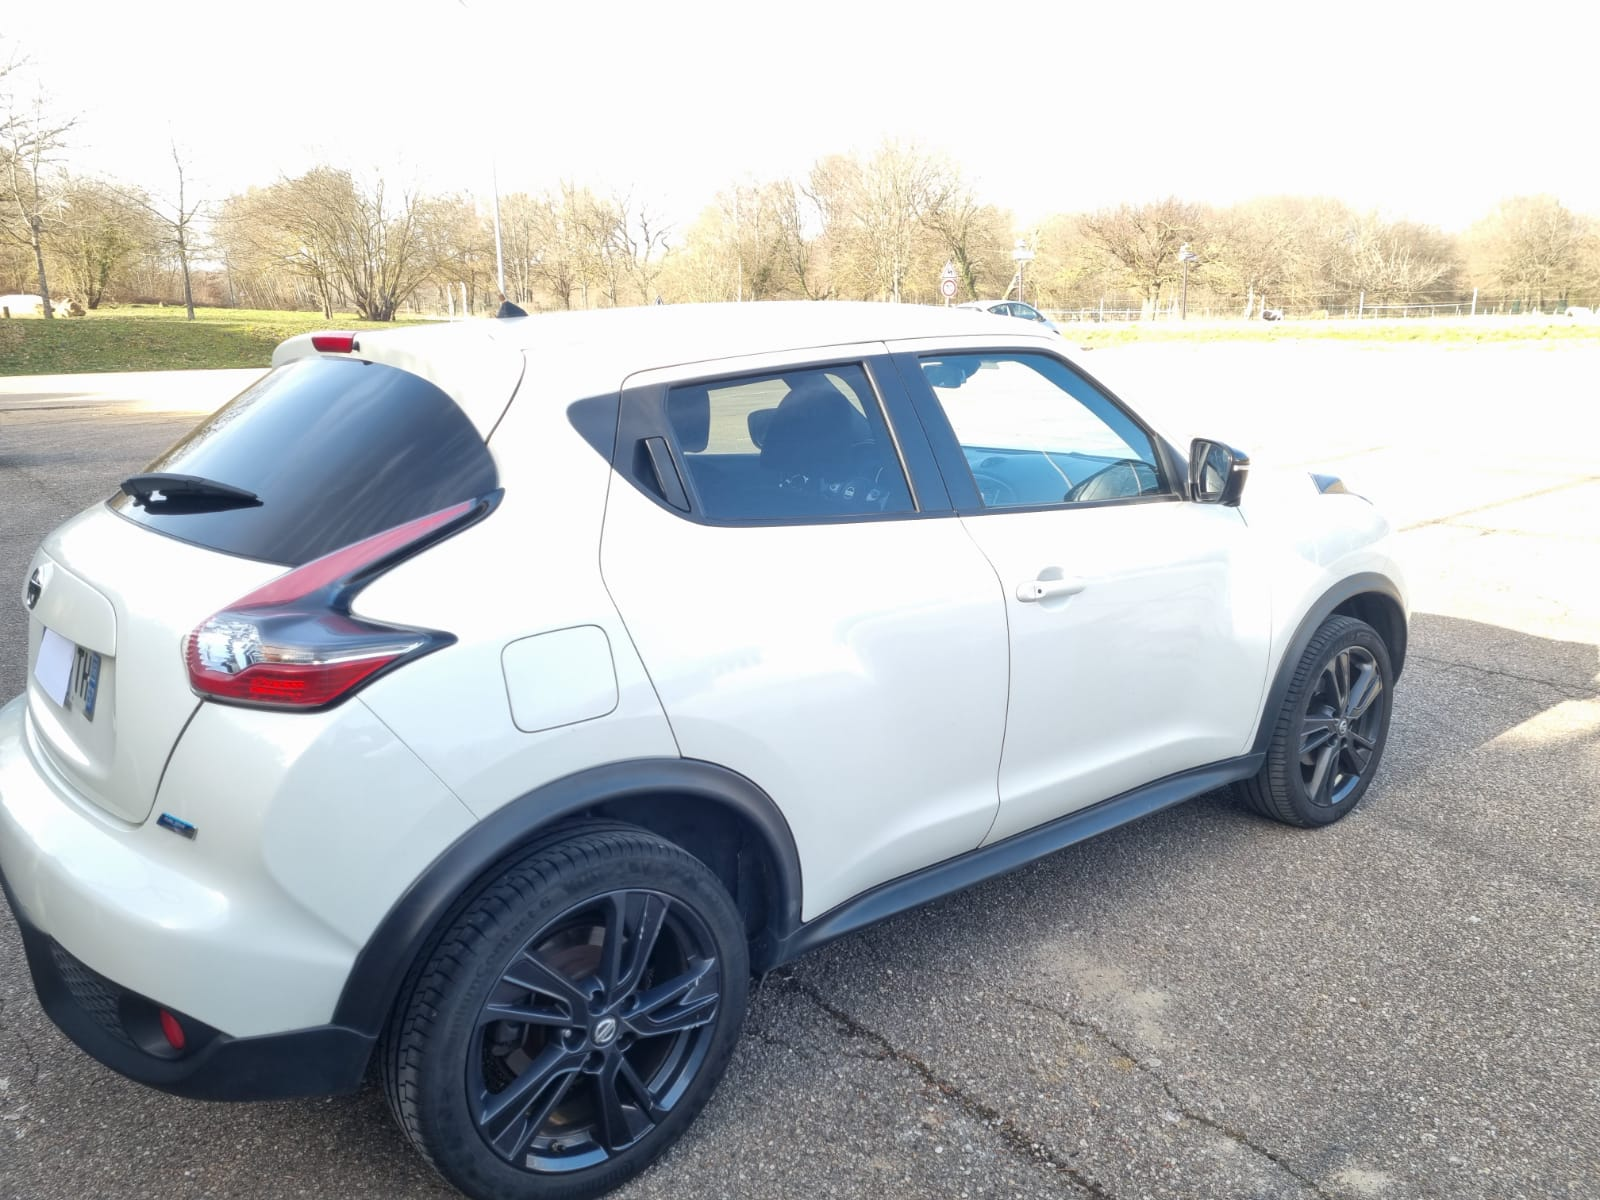 Nissan Juke 1.5 DCI 110 CONNECT EDITION 2015